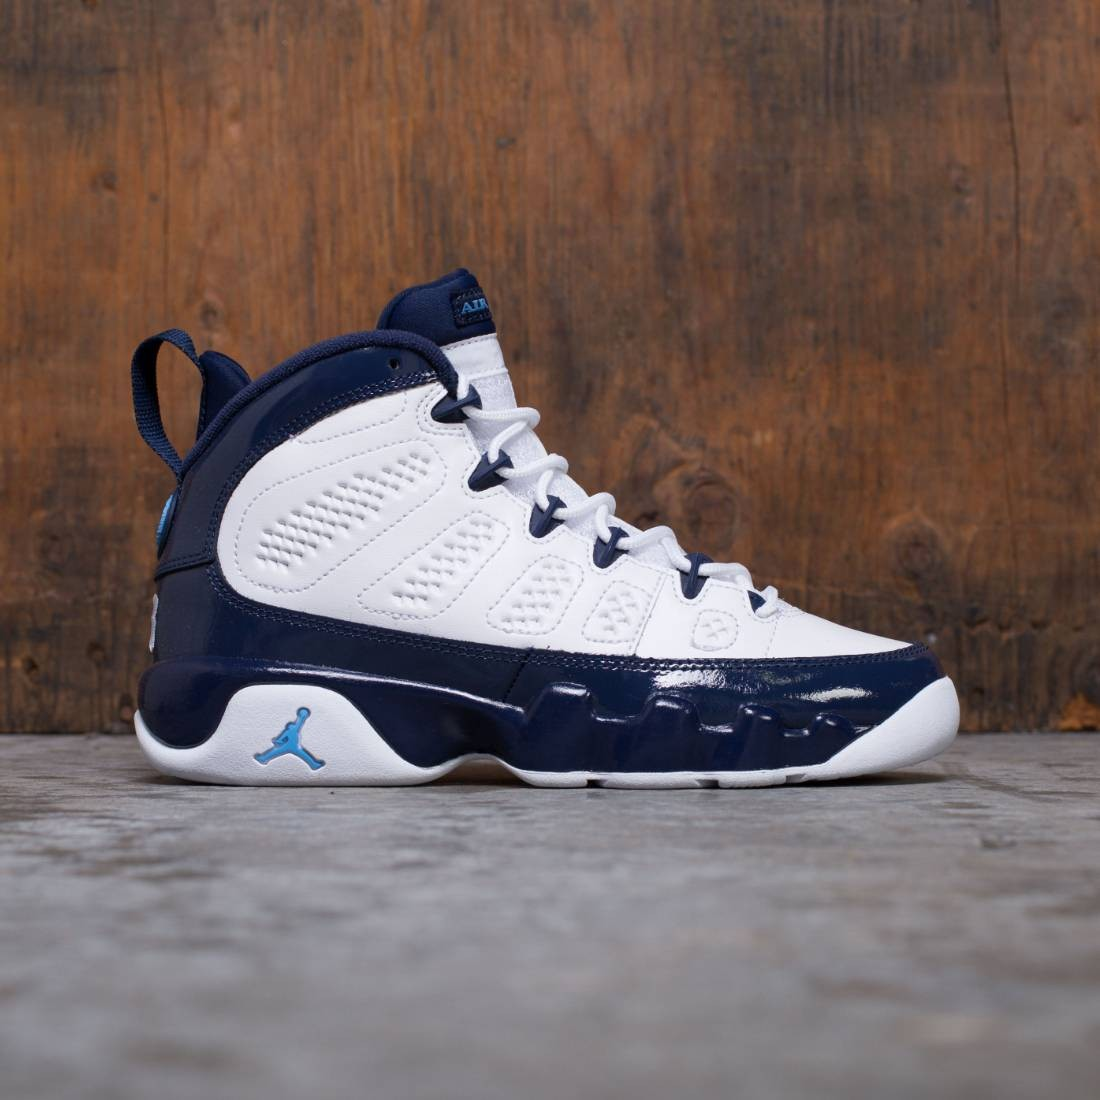 bc366918a63 jordan big kids boy air jordan 9 retro gs white university blue midnight  navy